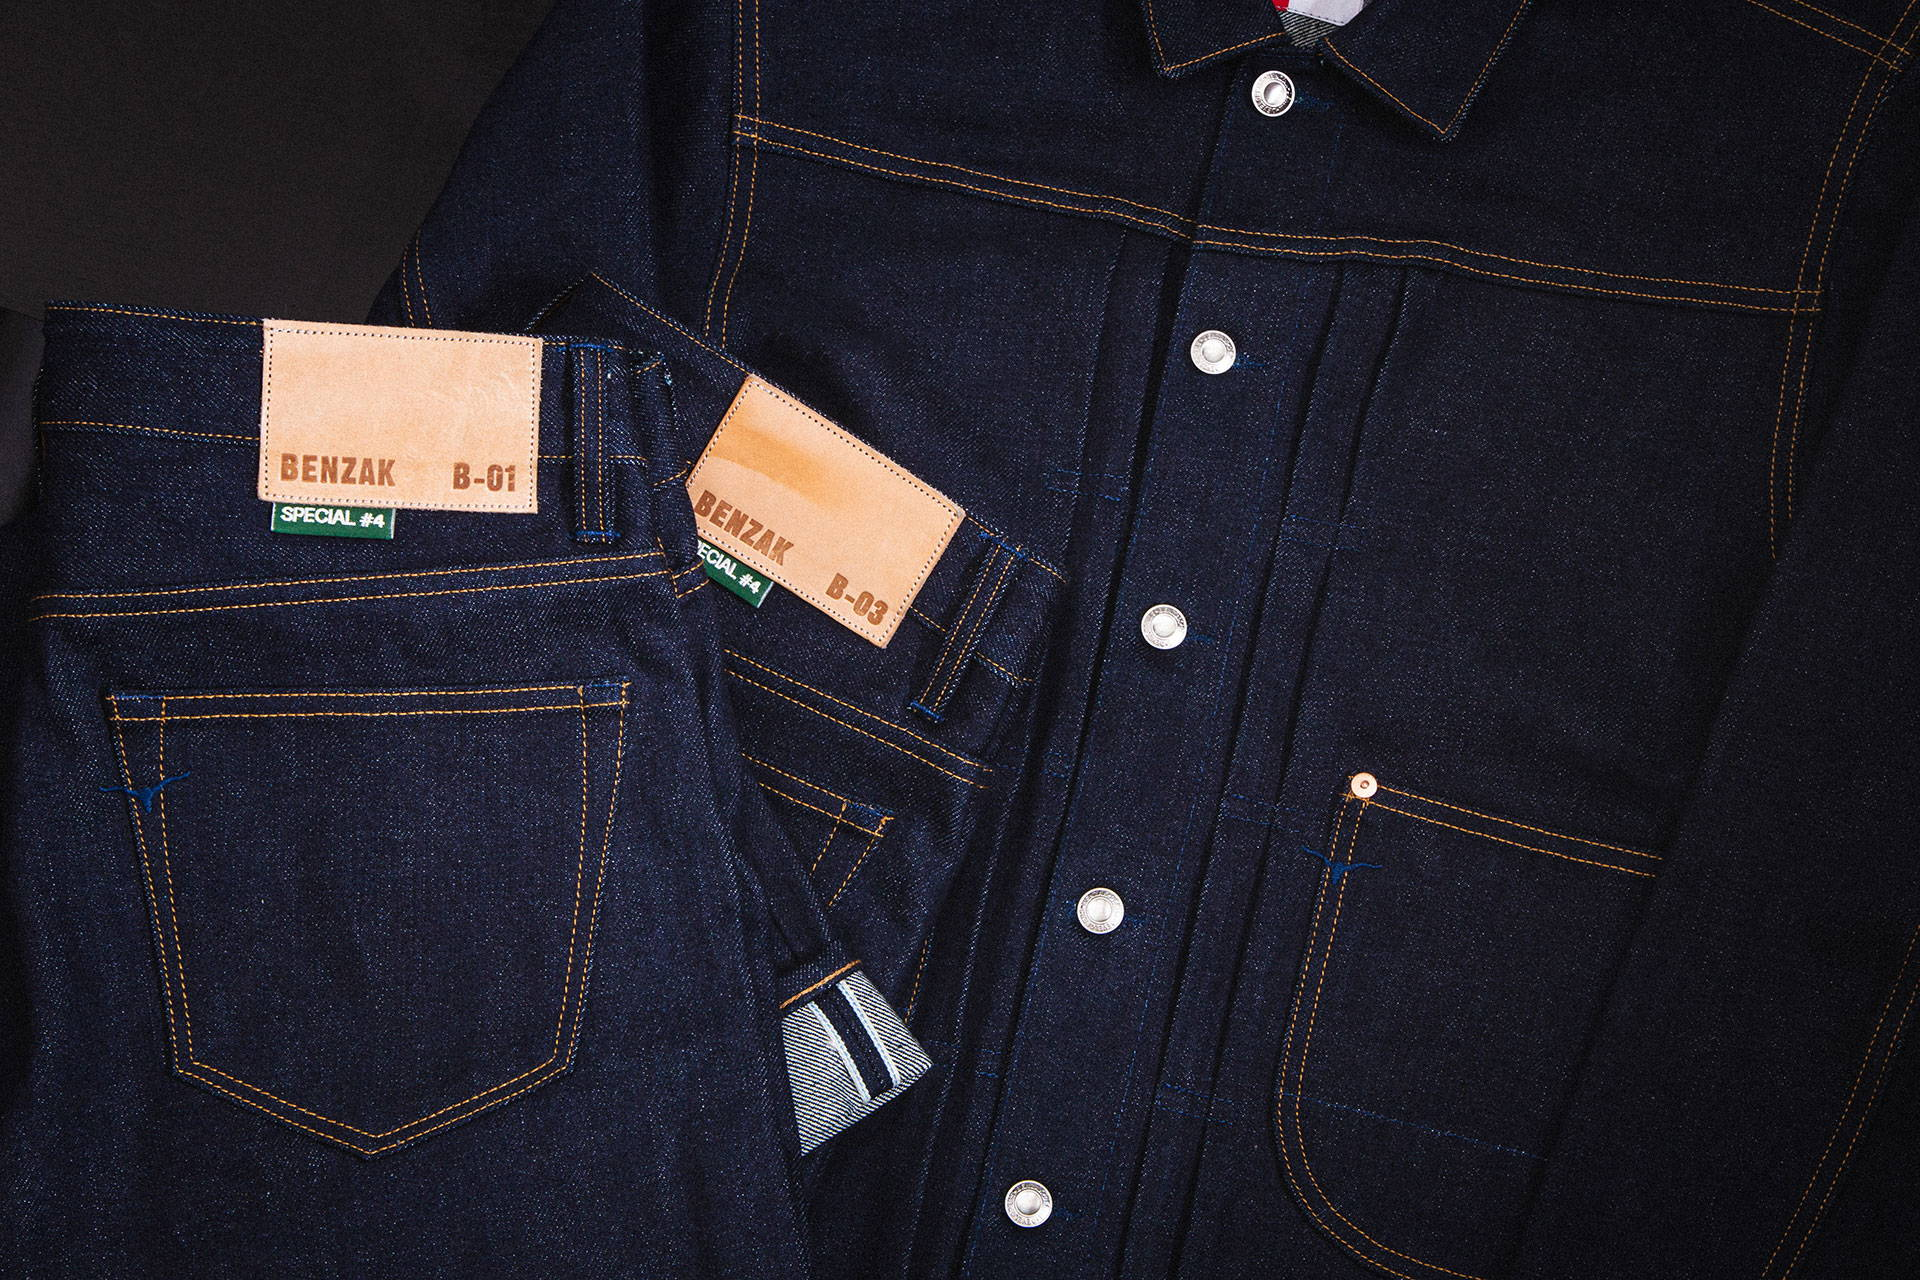 BENZAK | special #4 | SELVEDGE | RAW DENIM | DEEP INDIGO | 18.5 oz | JEANS | COWBOY JACKET